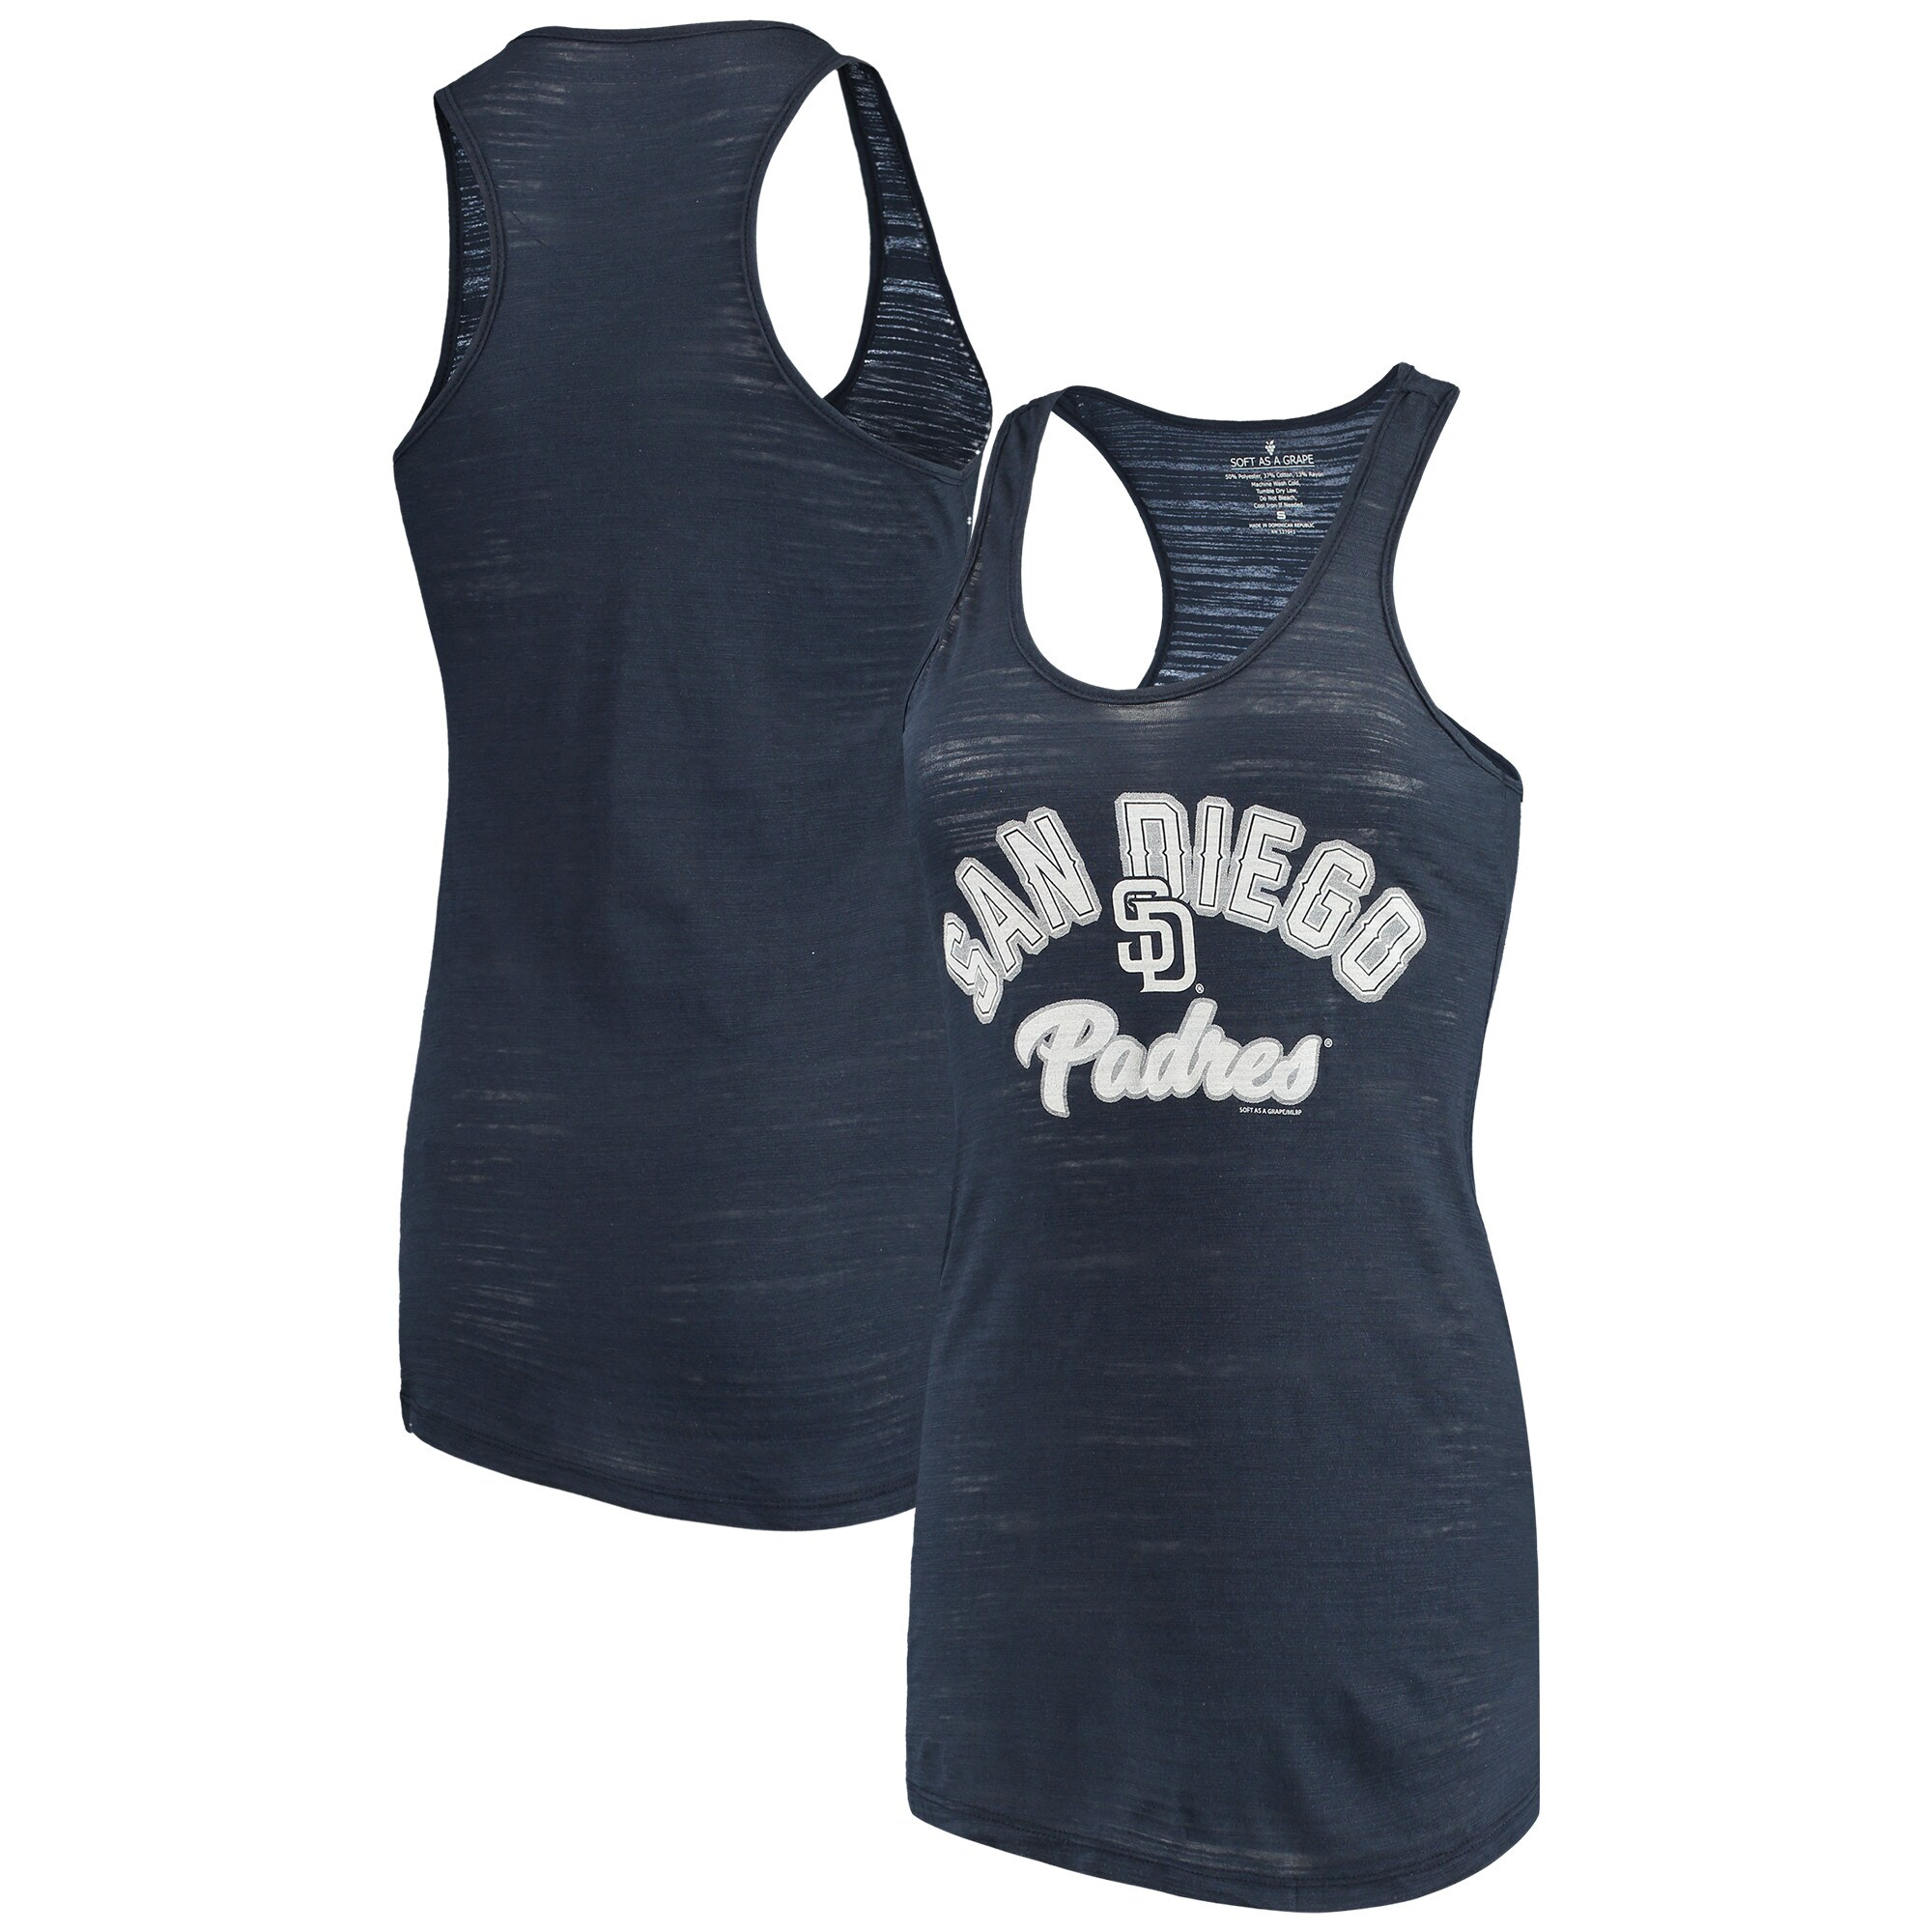 San Diego Padres Soft as a Grape Women's Multicount Racerback Tank Top - Navy